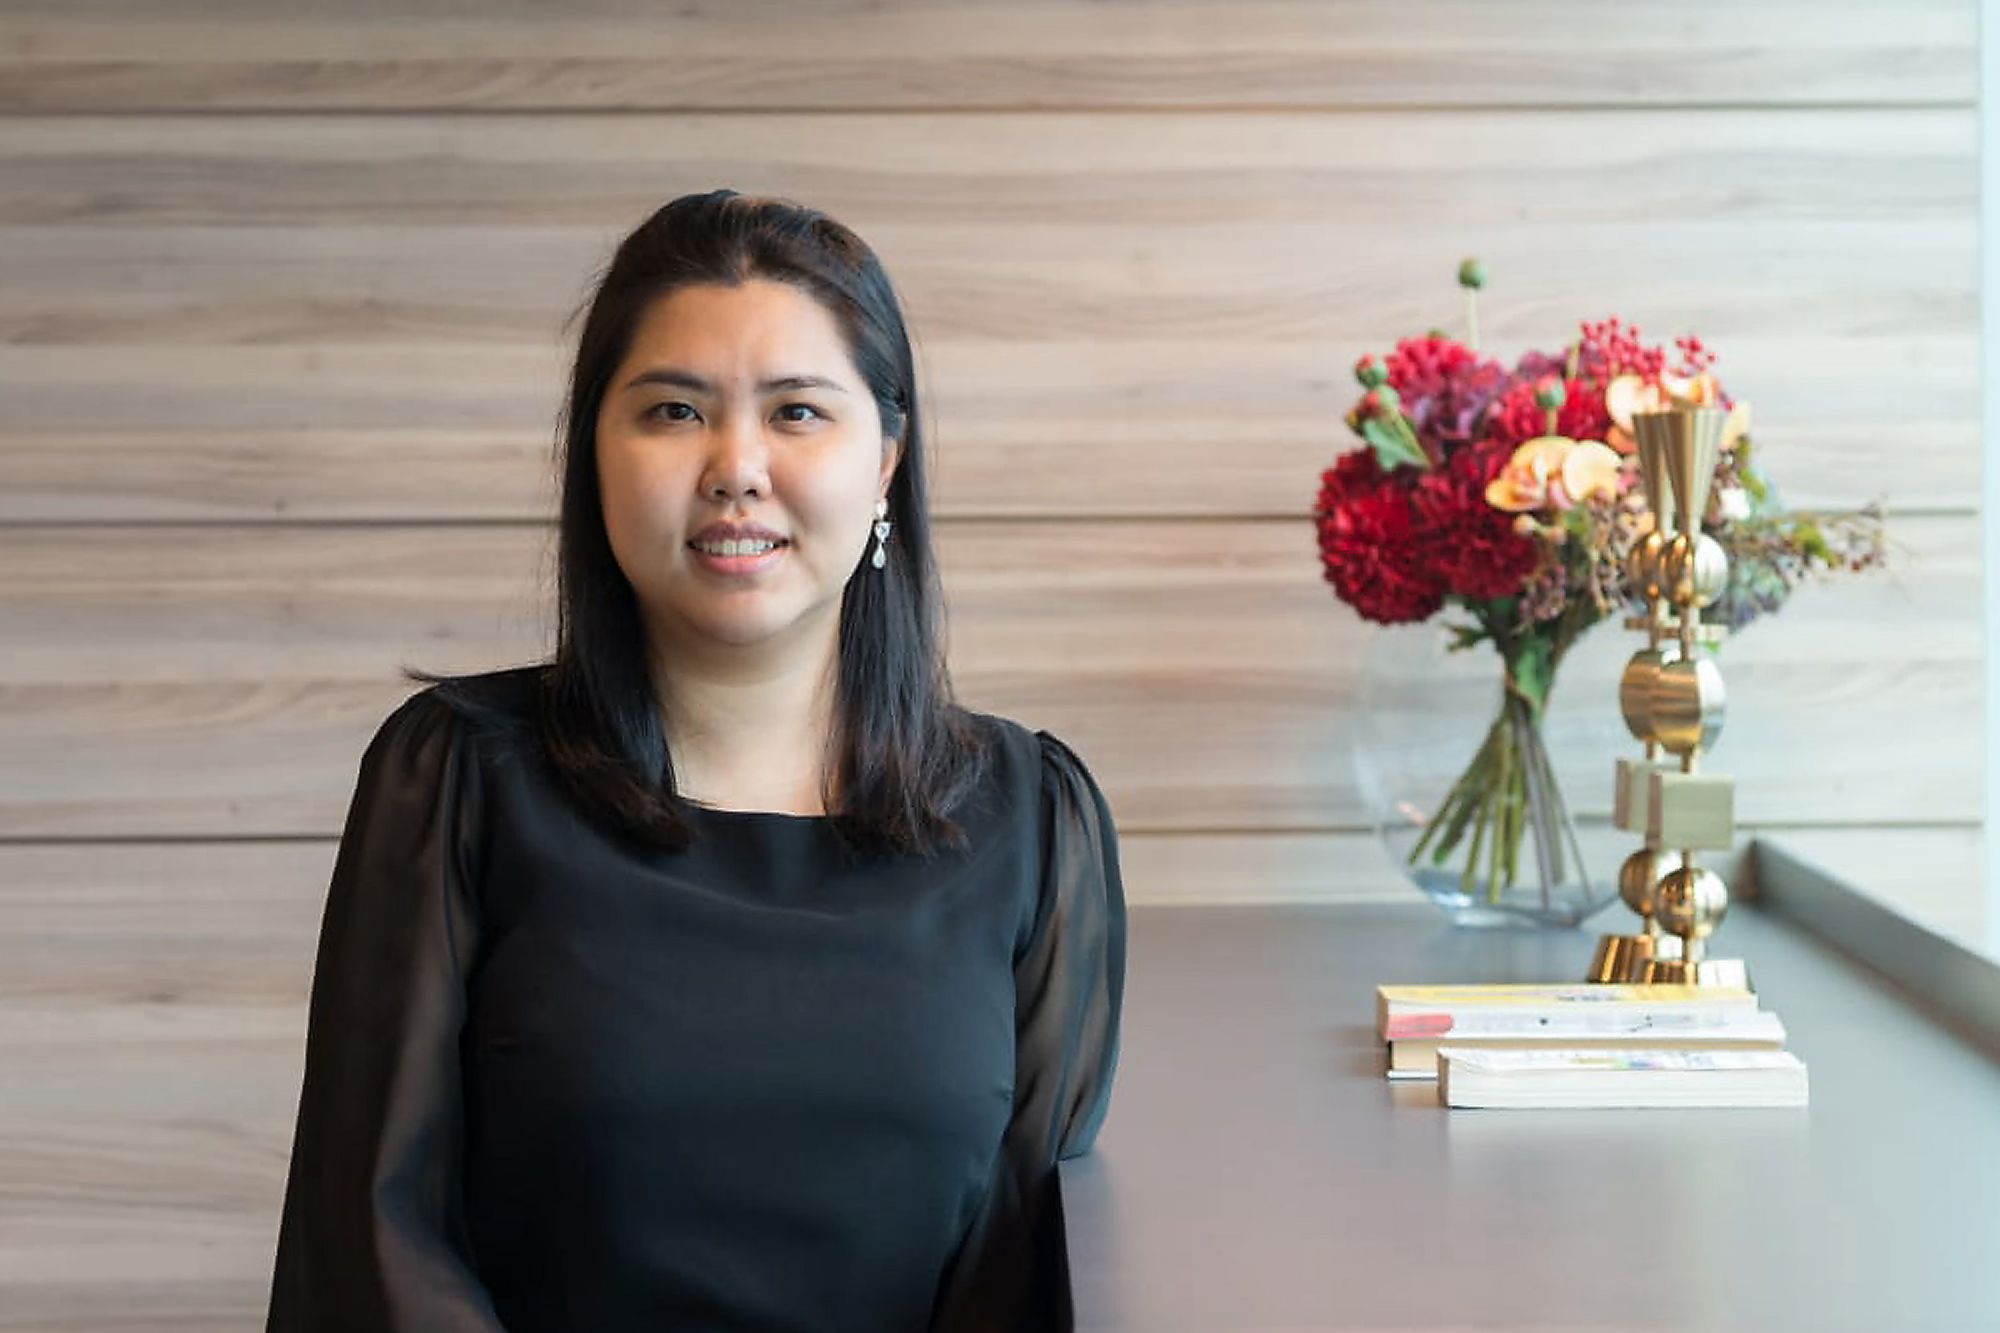 What Matters To Me: Ada Chirapaisarnkul, Founder Of The Thai Young Philanthropist Network